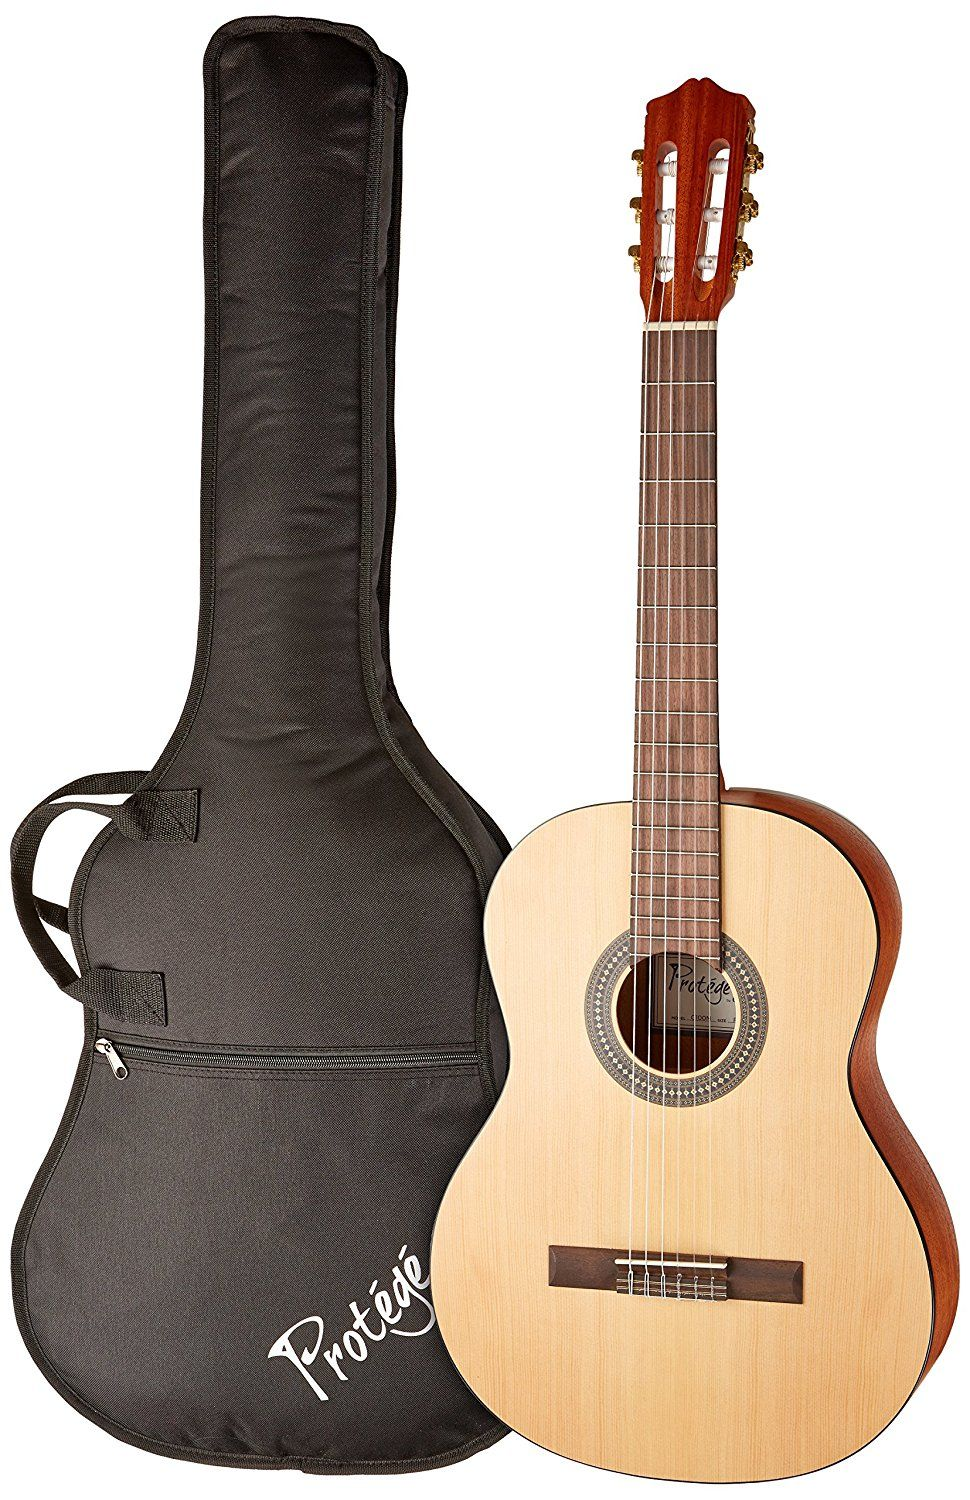 10 Top 10 Best Acoustic Guitars In 2017 Best Acoustic Guitar Guitar Reviews Classical Guitar